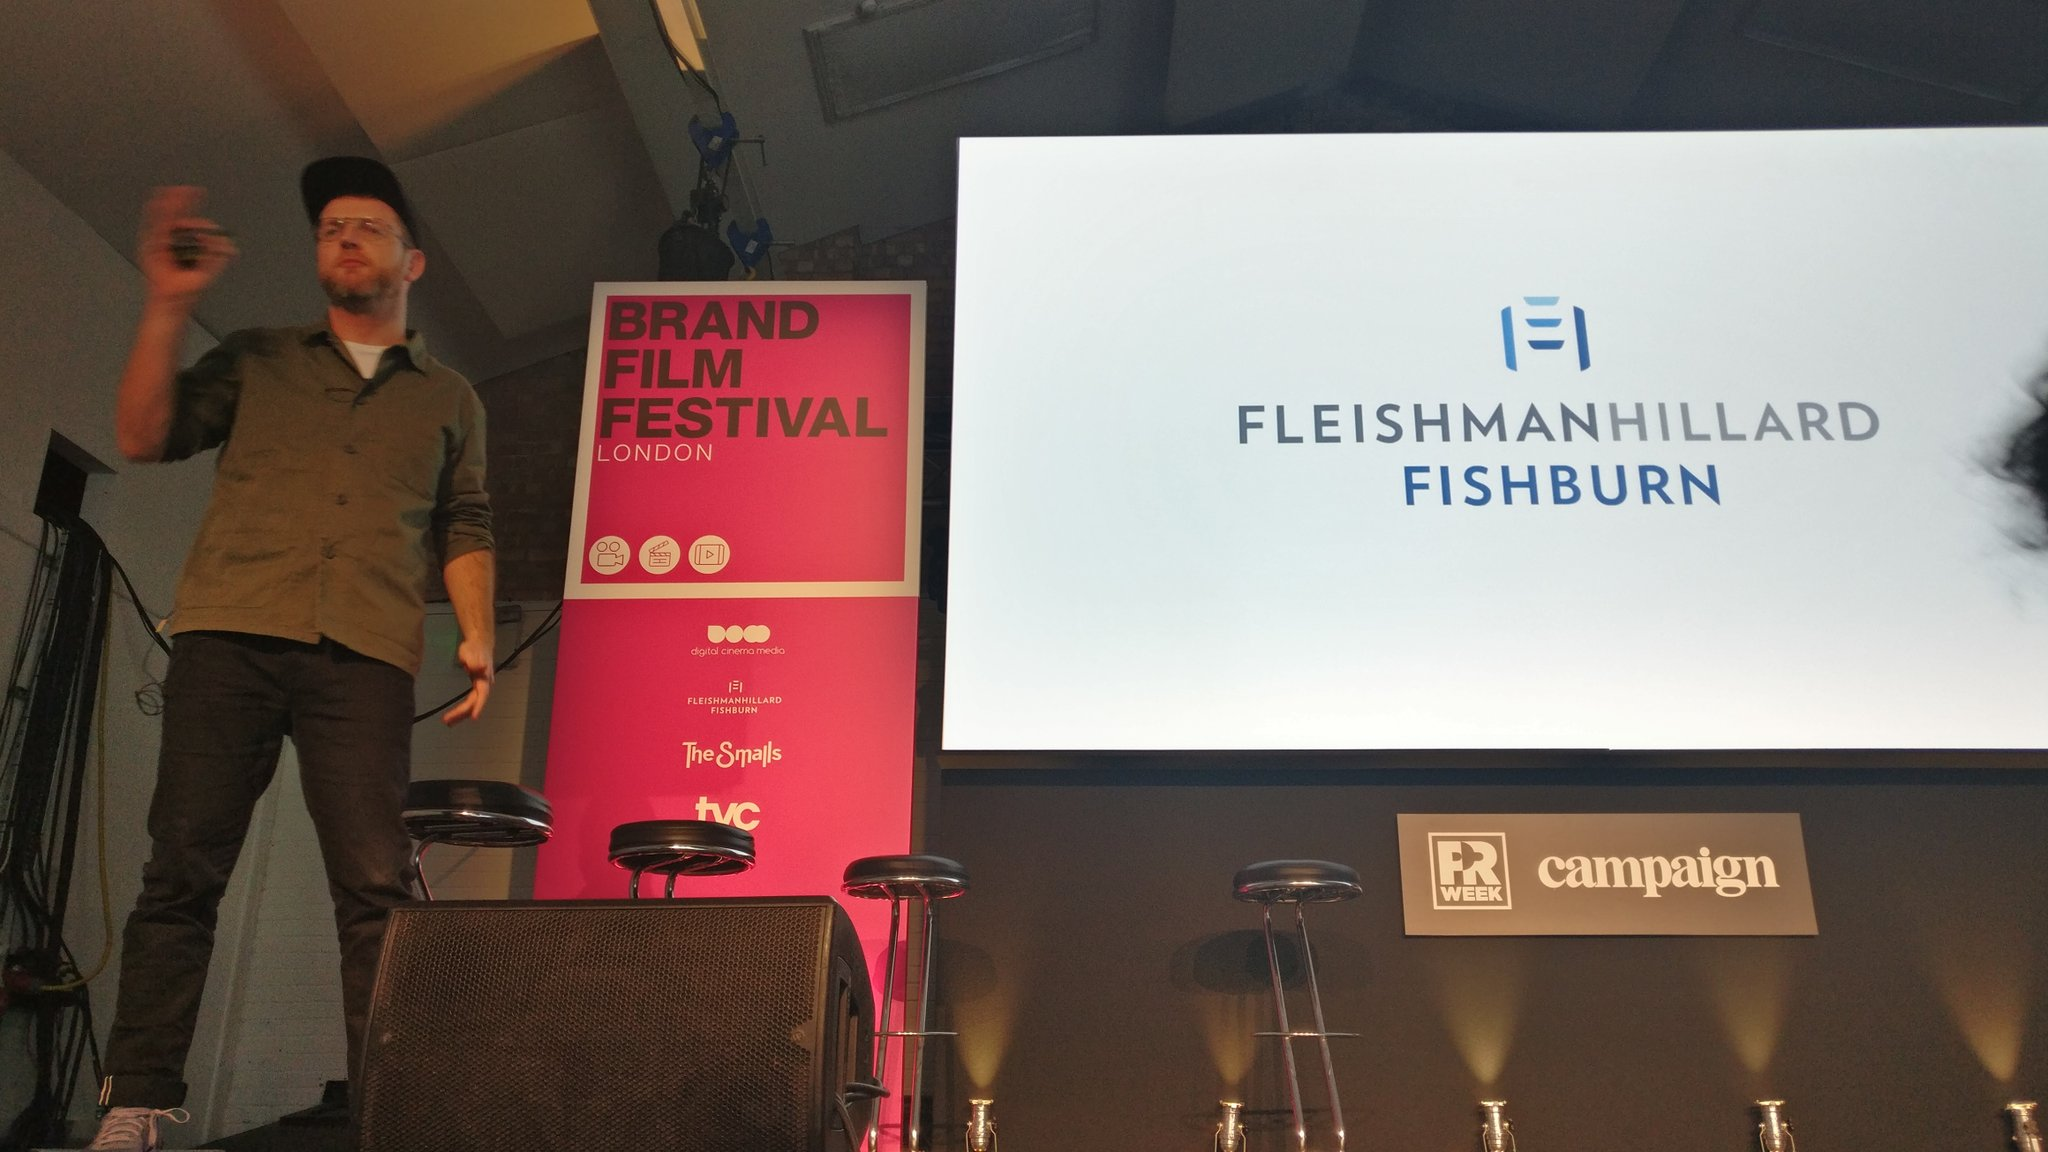 RT @FHFLondon: Our boy @LondonKev on stage at @BrandFilmFest https://t.co/LyQb6hZudK